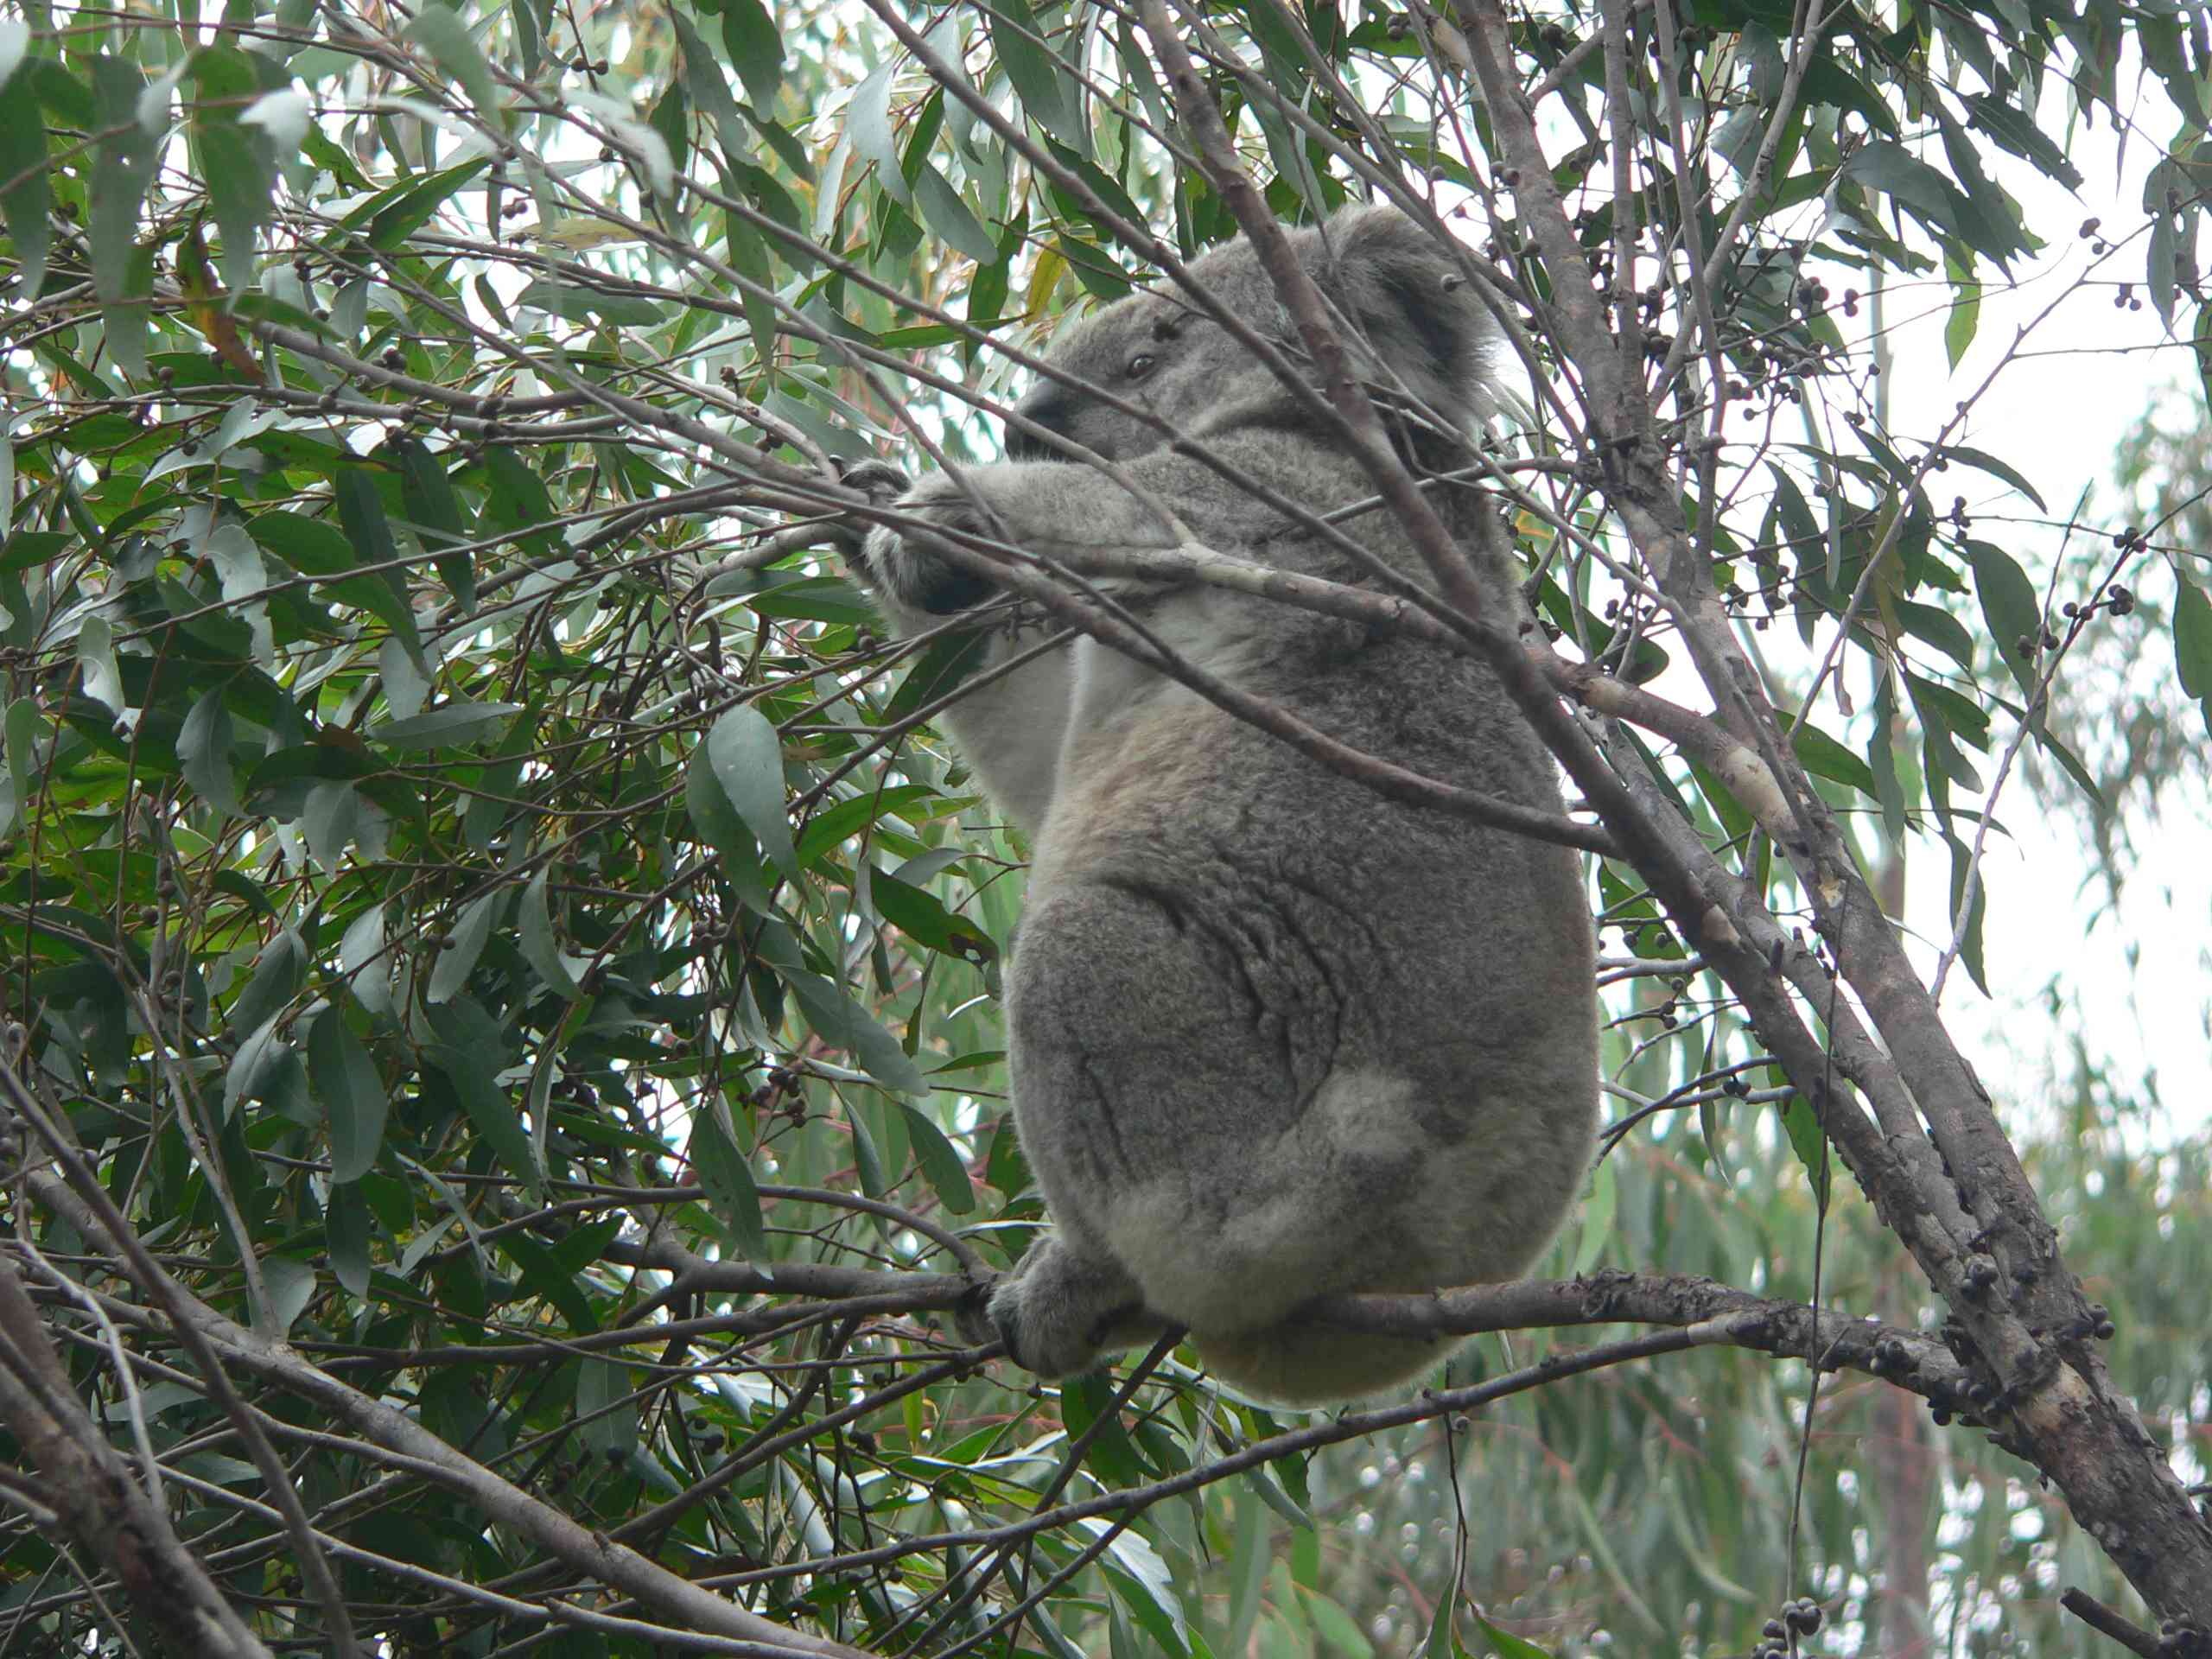 Cooperative koala project - protecting koalas, people and houses from wildfire